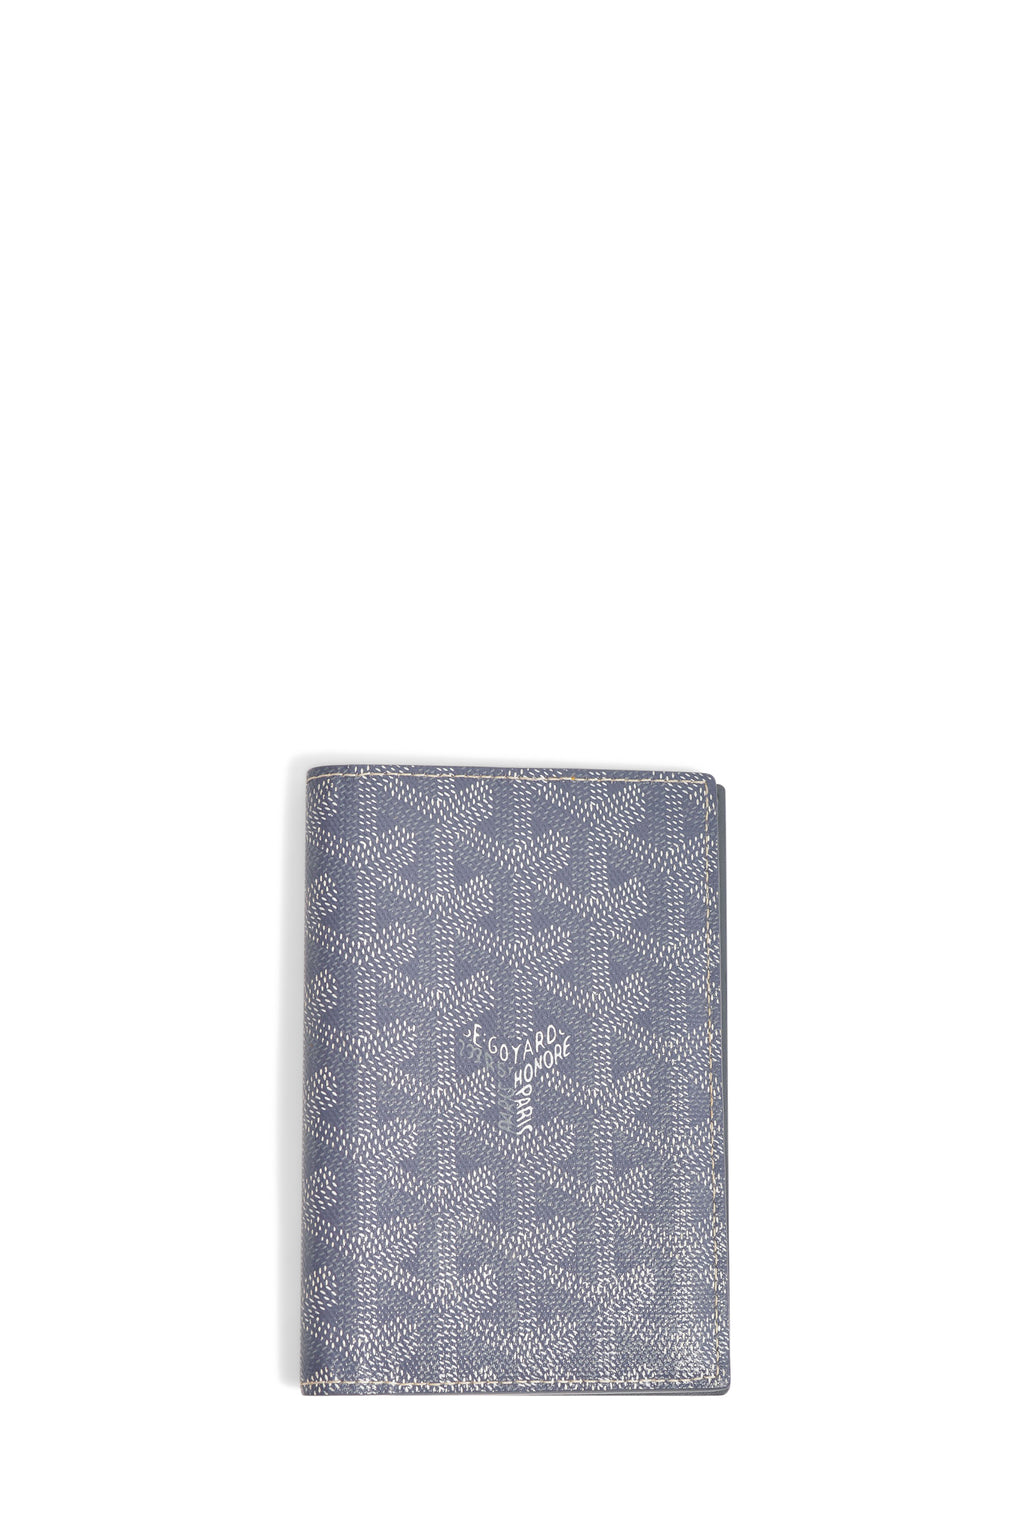 Goyard Grey Passport Holder